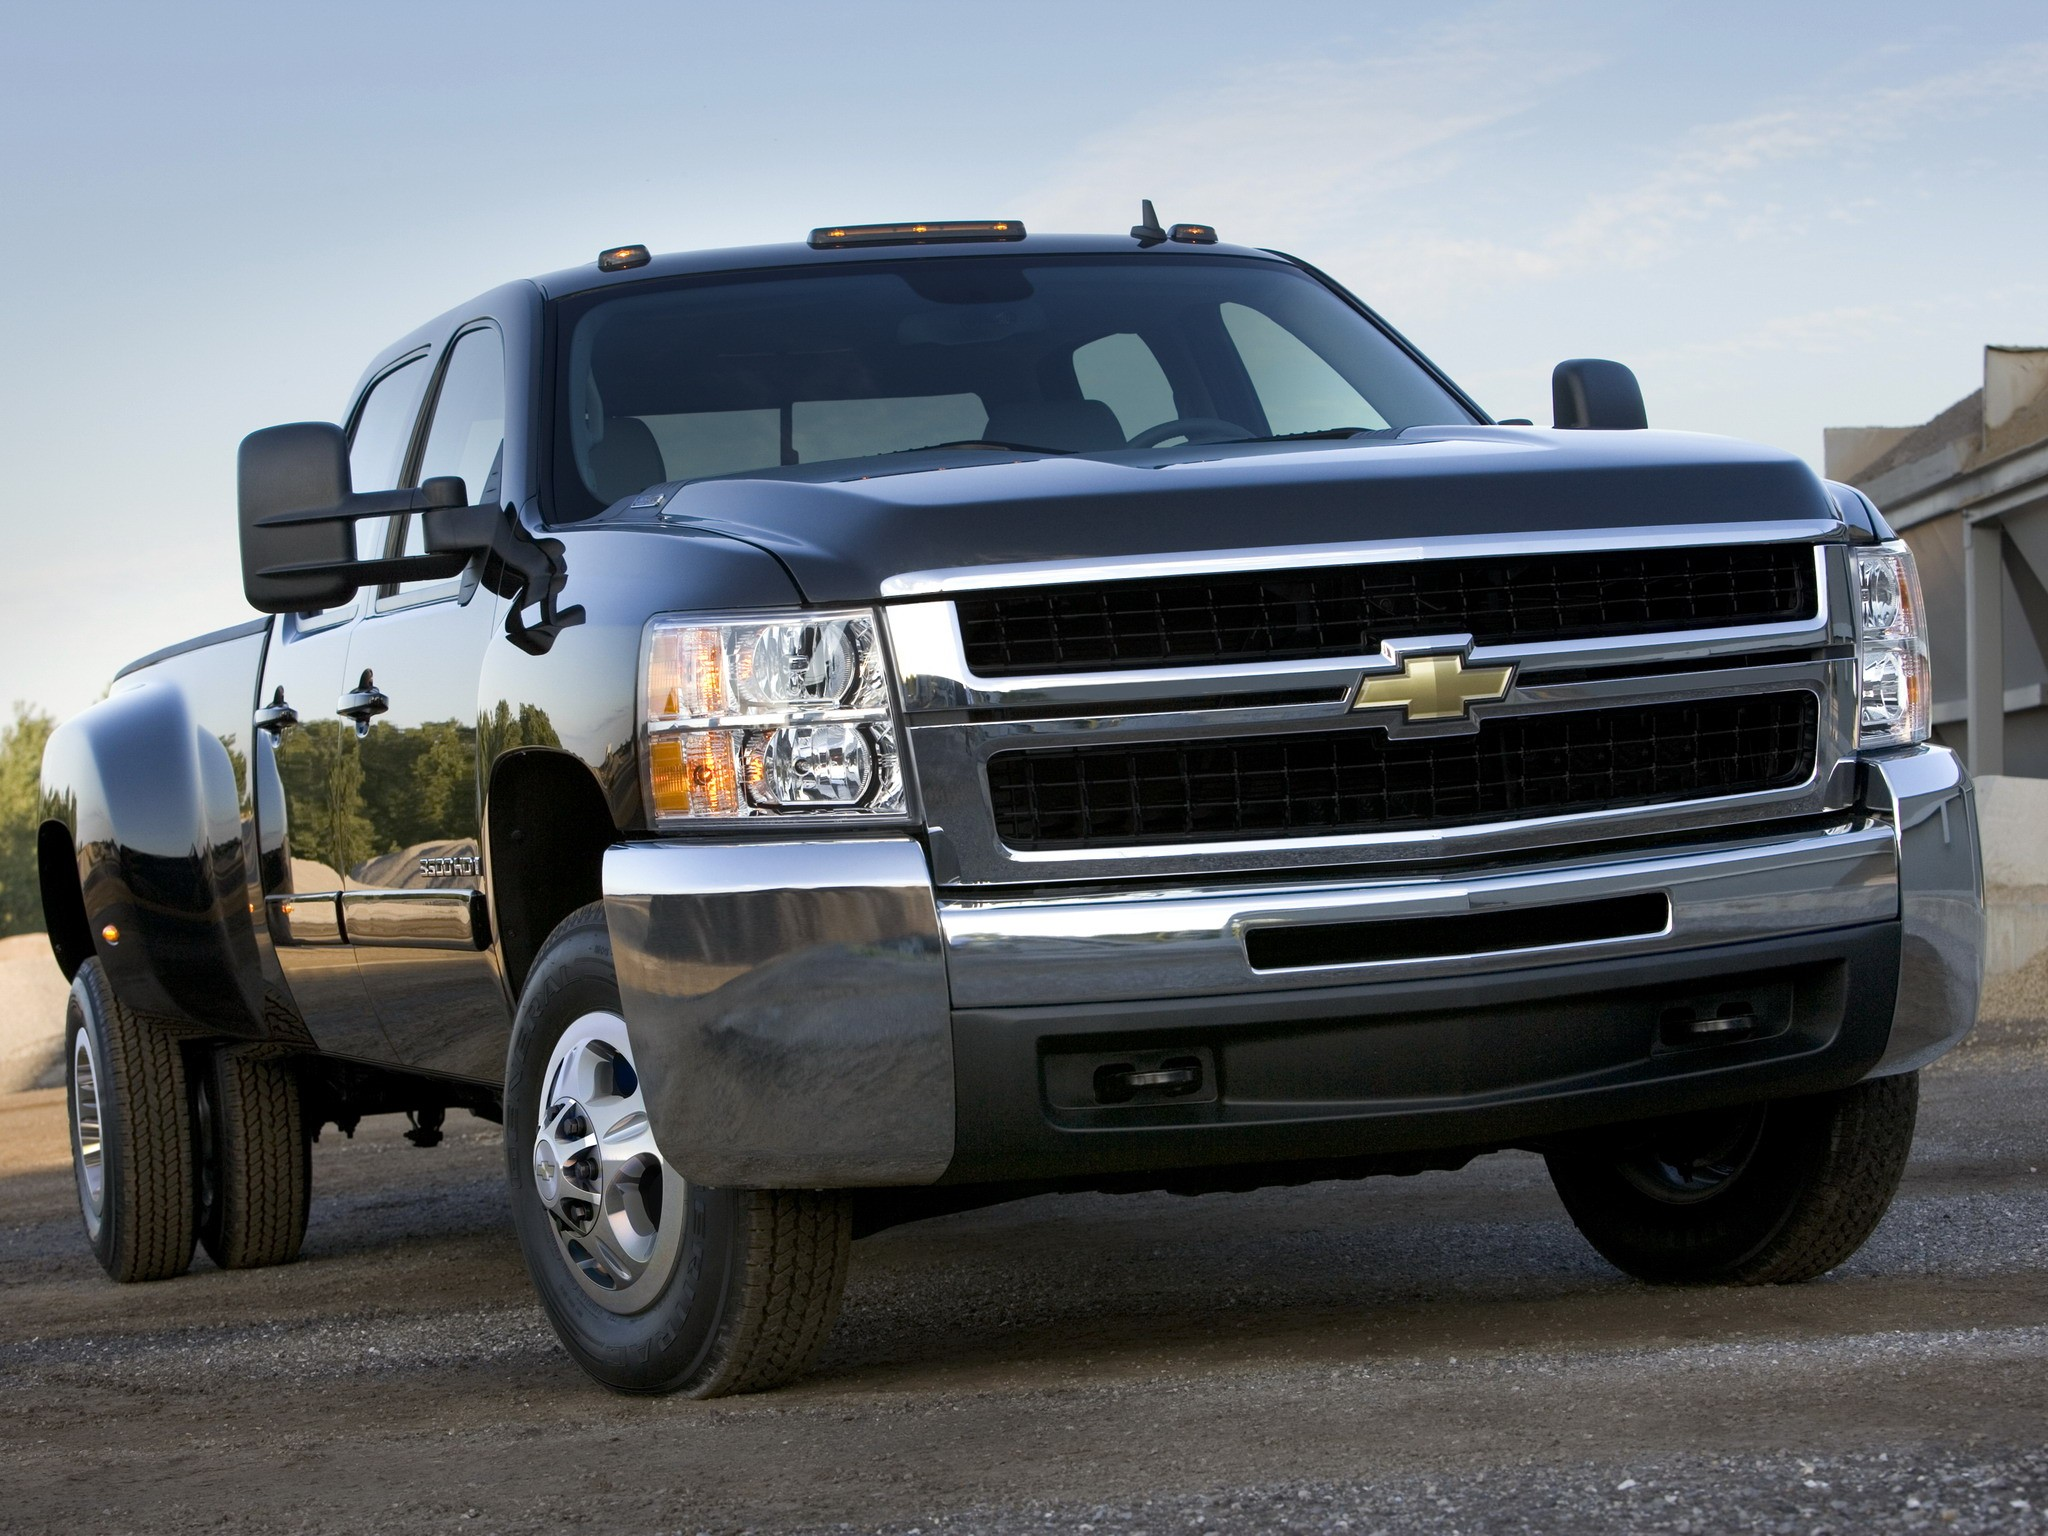 Chevrolet Silverado 3500hd Crew Cab Specs Photos 2008 2009 2010 2011 2012 2013 Autoevolution